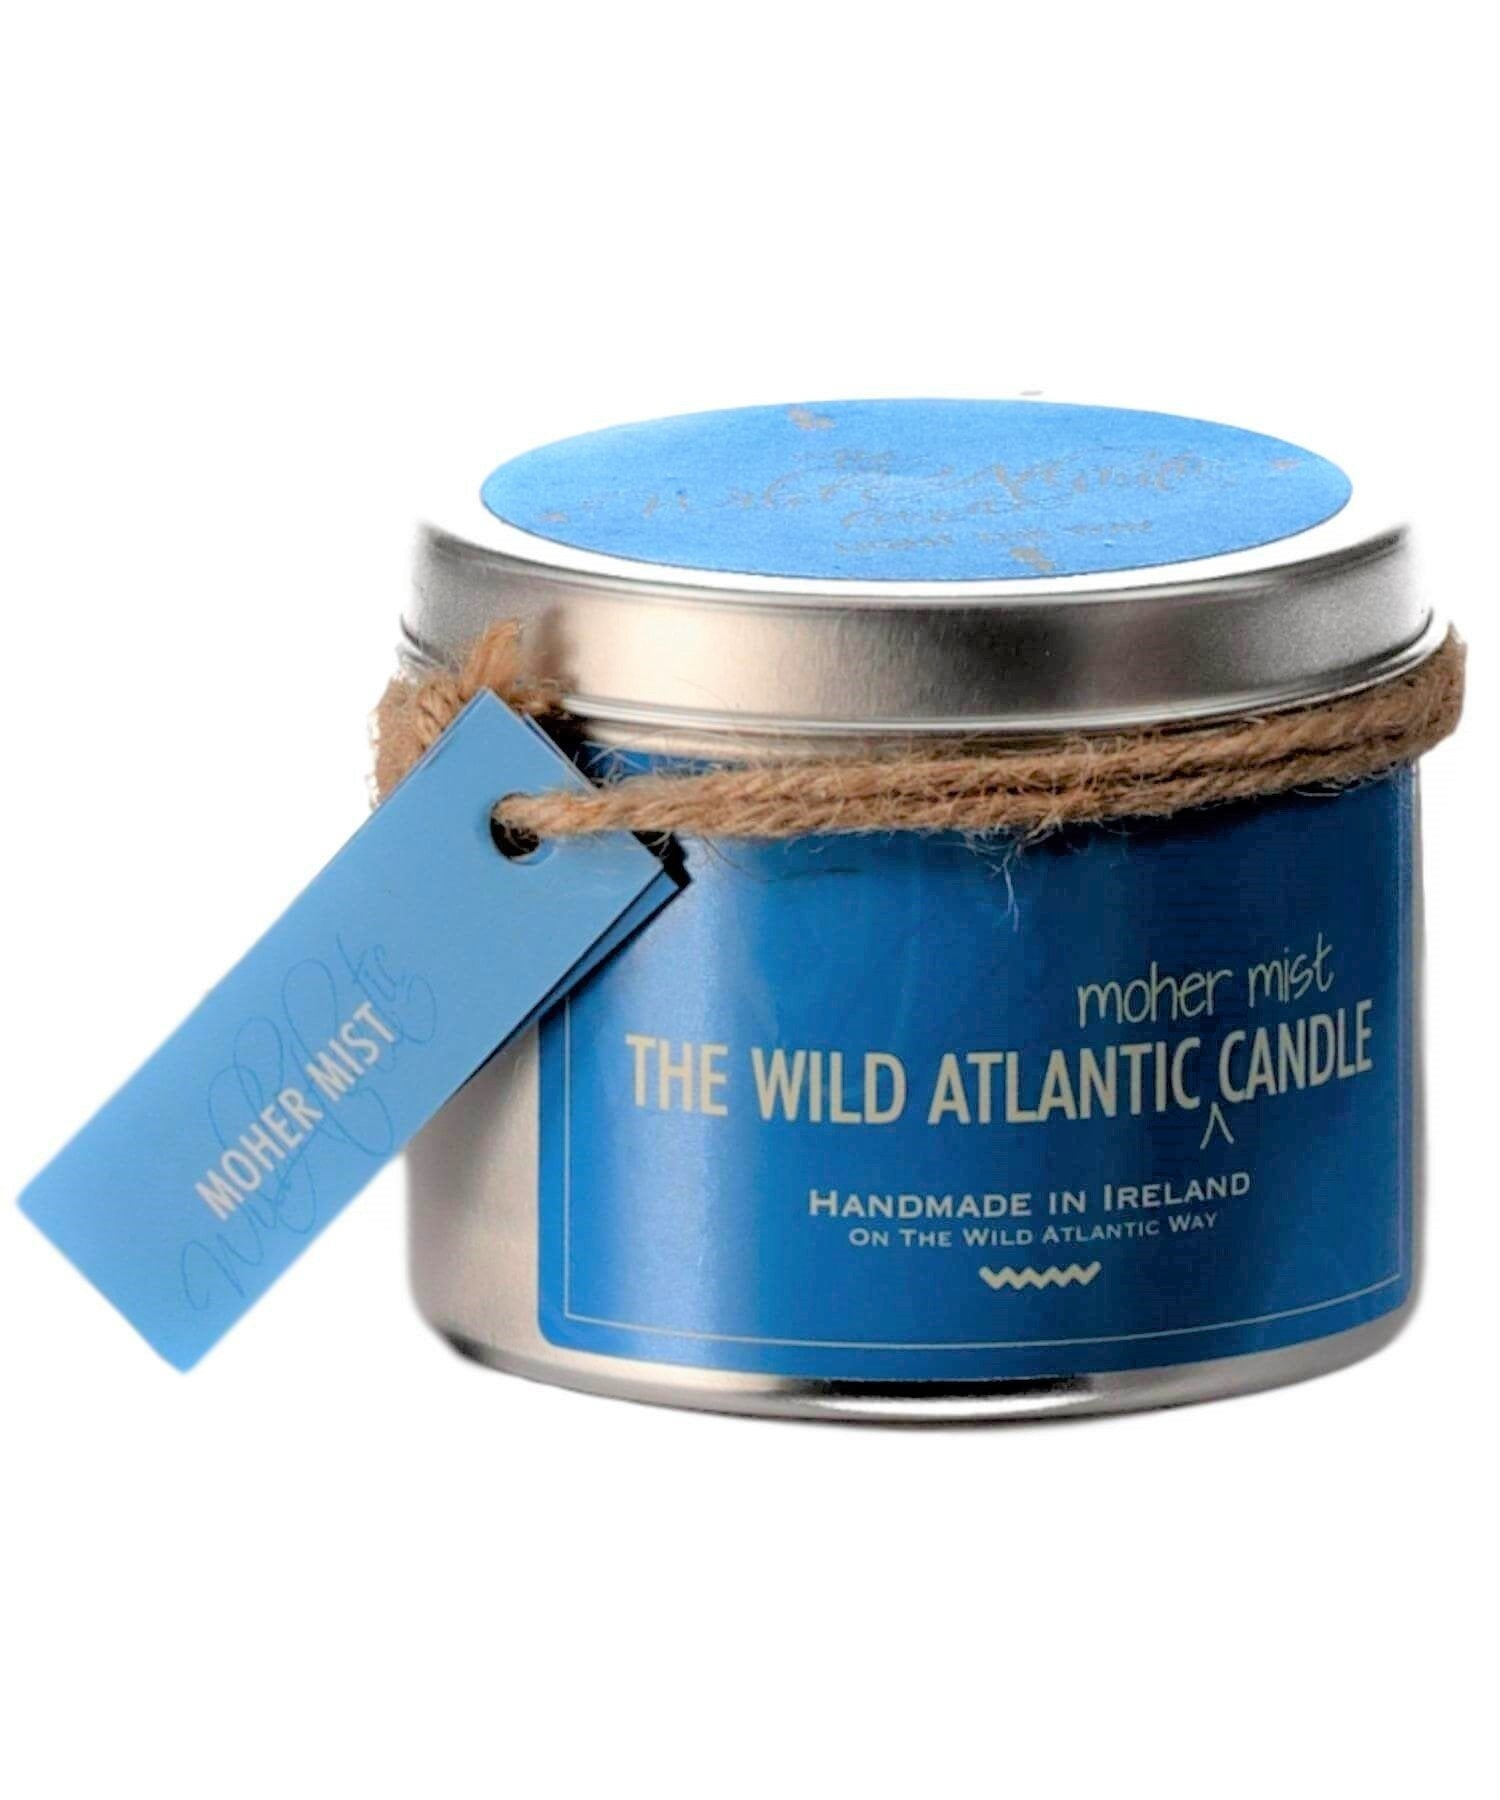 Moher Mist Wild Atlantic Candles Home Fragrance